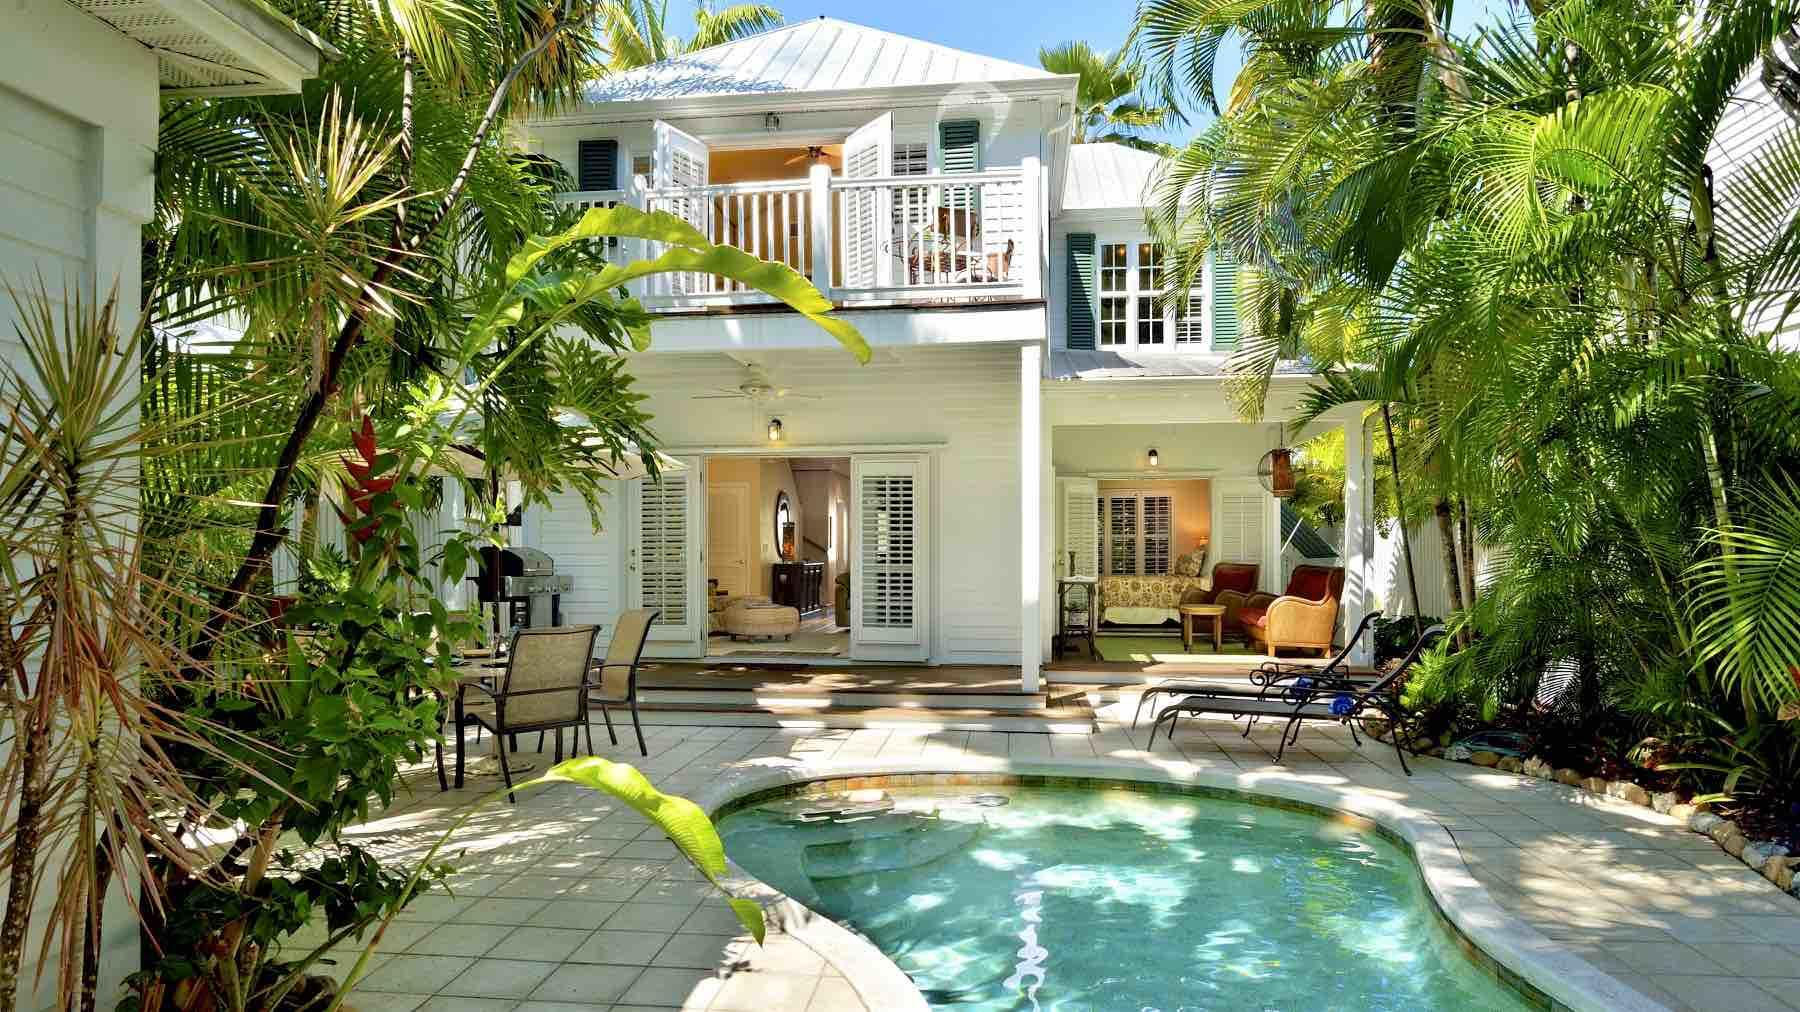 Vacation Home with pool, large patio area and 3 bedrooms in Key West, FL